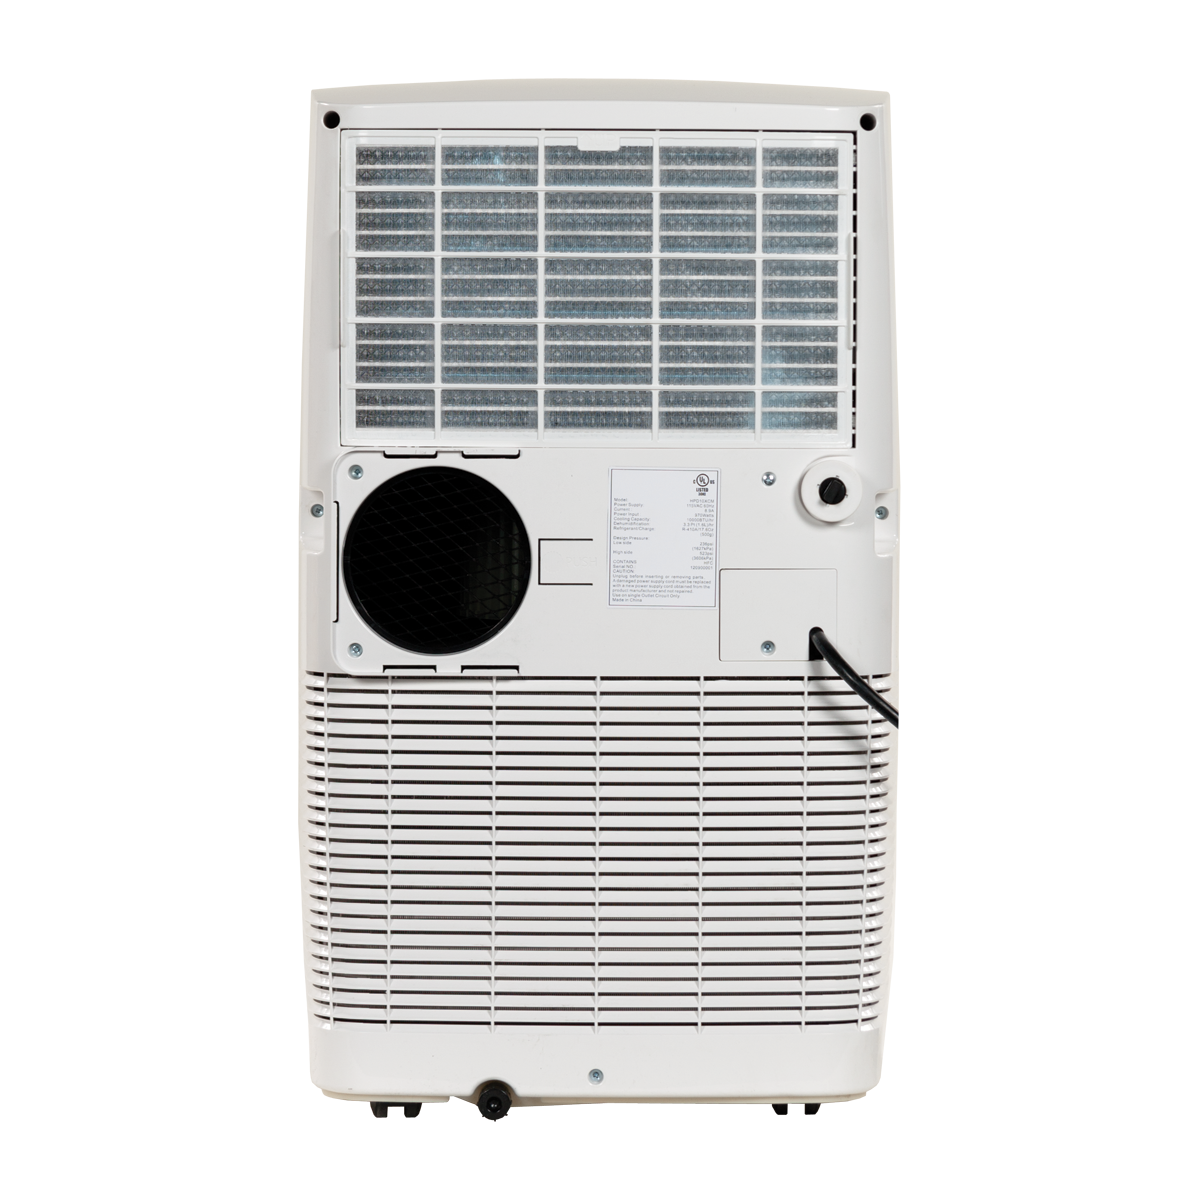 #515A60 Haier 10 000 BTU Portable Air Conditioner AC Dehumidifier  2017 13612 Portable Dehumidifier Air Conditioner photo with 1200x1200 px on helpvideos.info - Air Conditioners, Air Coolers and more